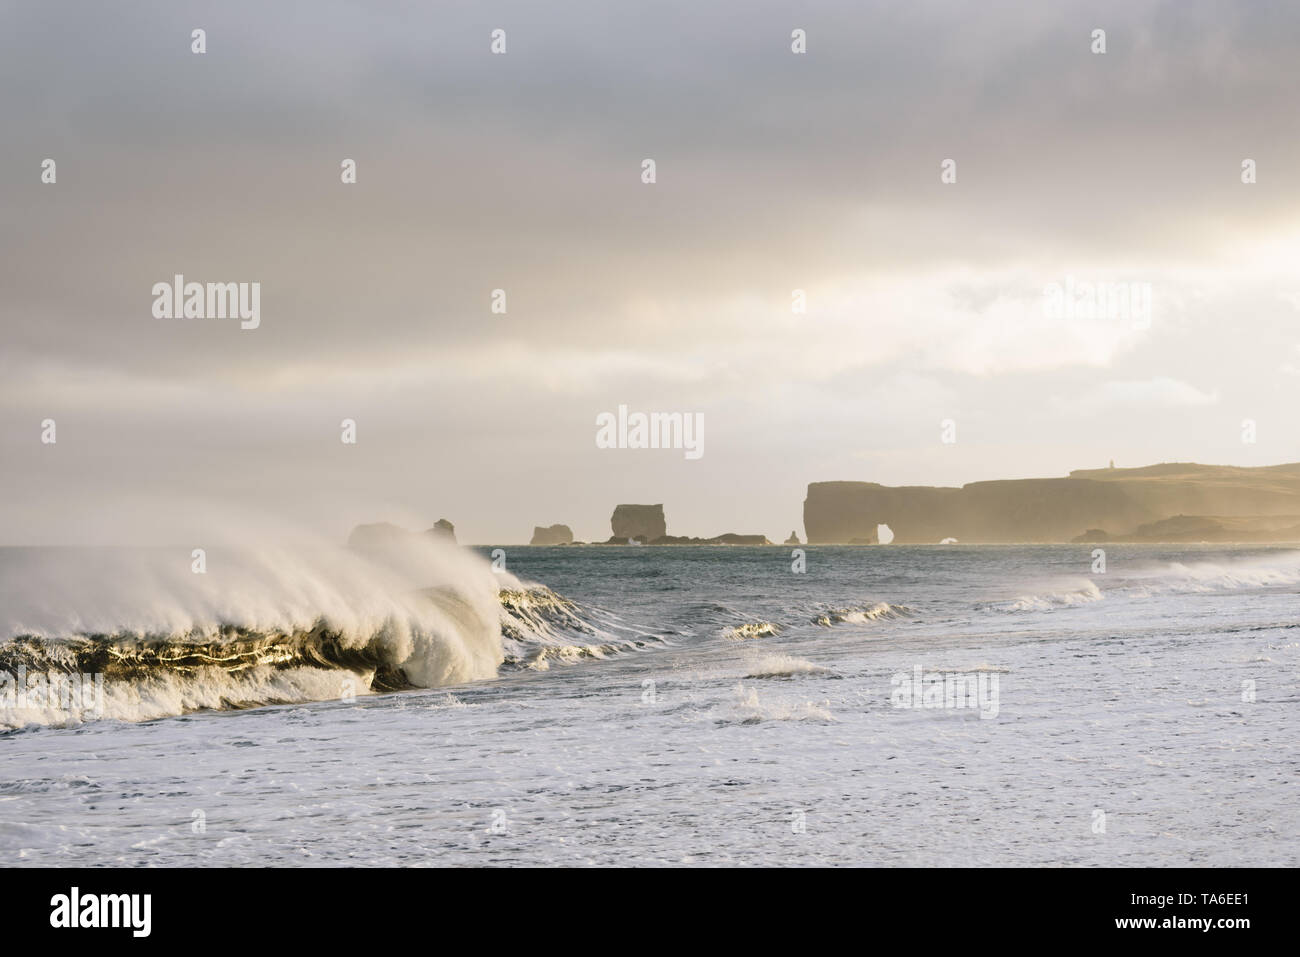 View of Cape Dyrholaey from Reynisfjara Beach, Iceland. Big waves on the ocean. Stormy weather with strong wind. Beautiful evening sunlight Stock Photo